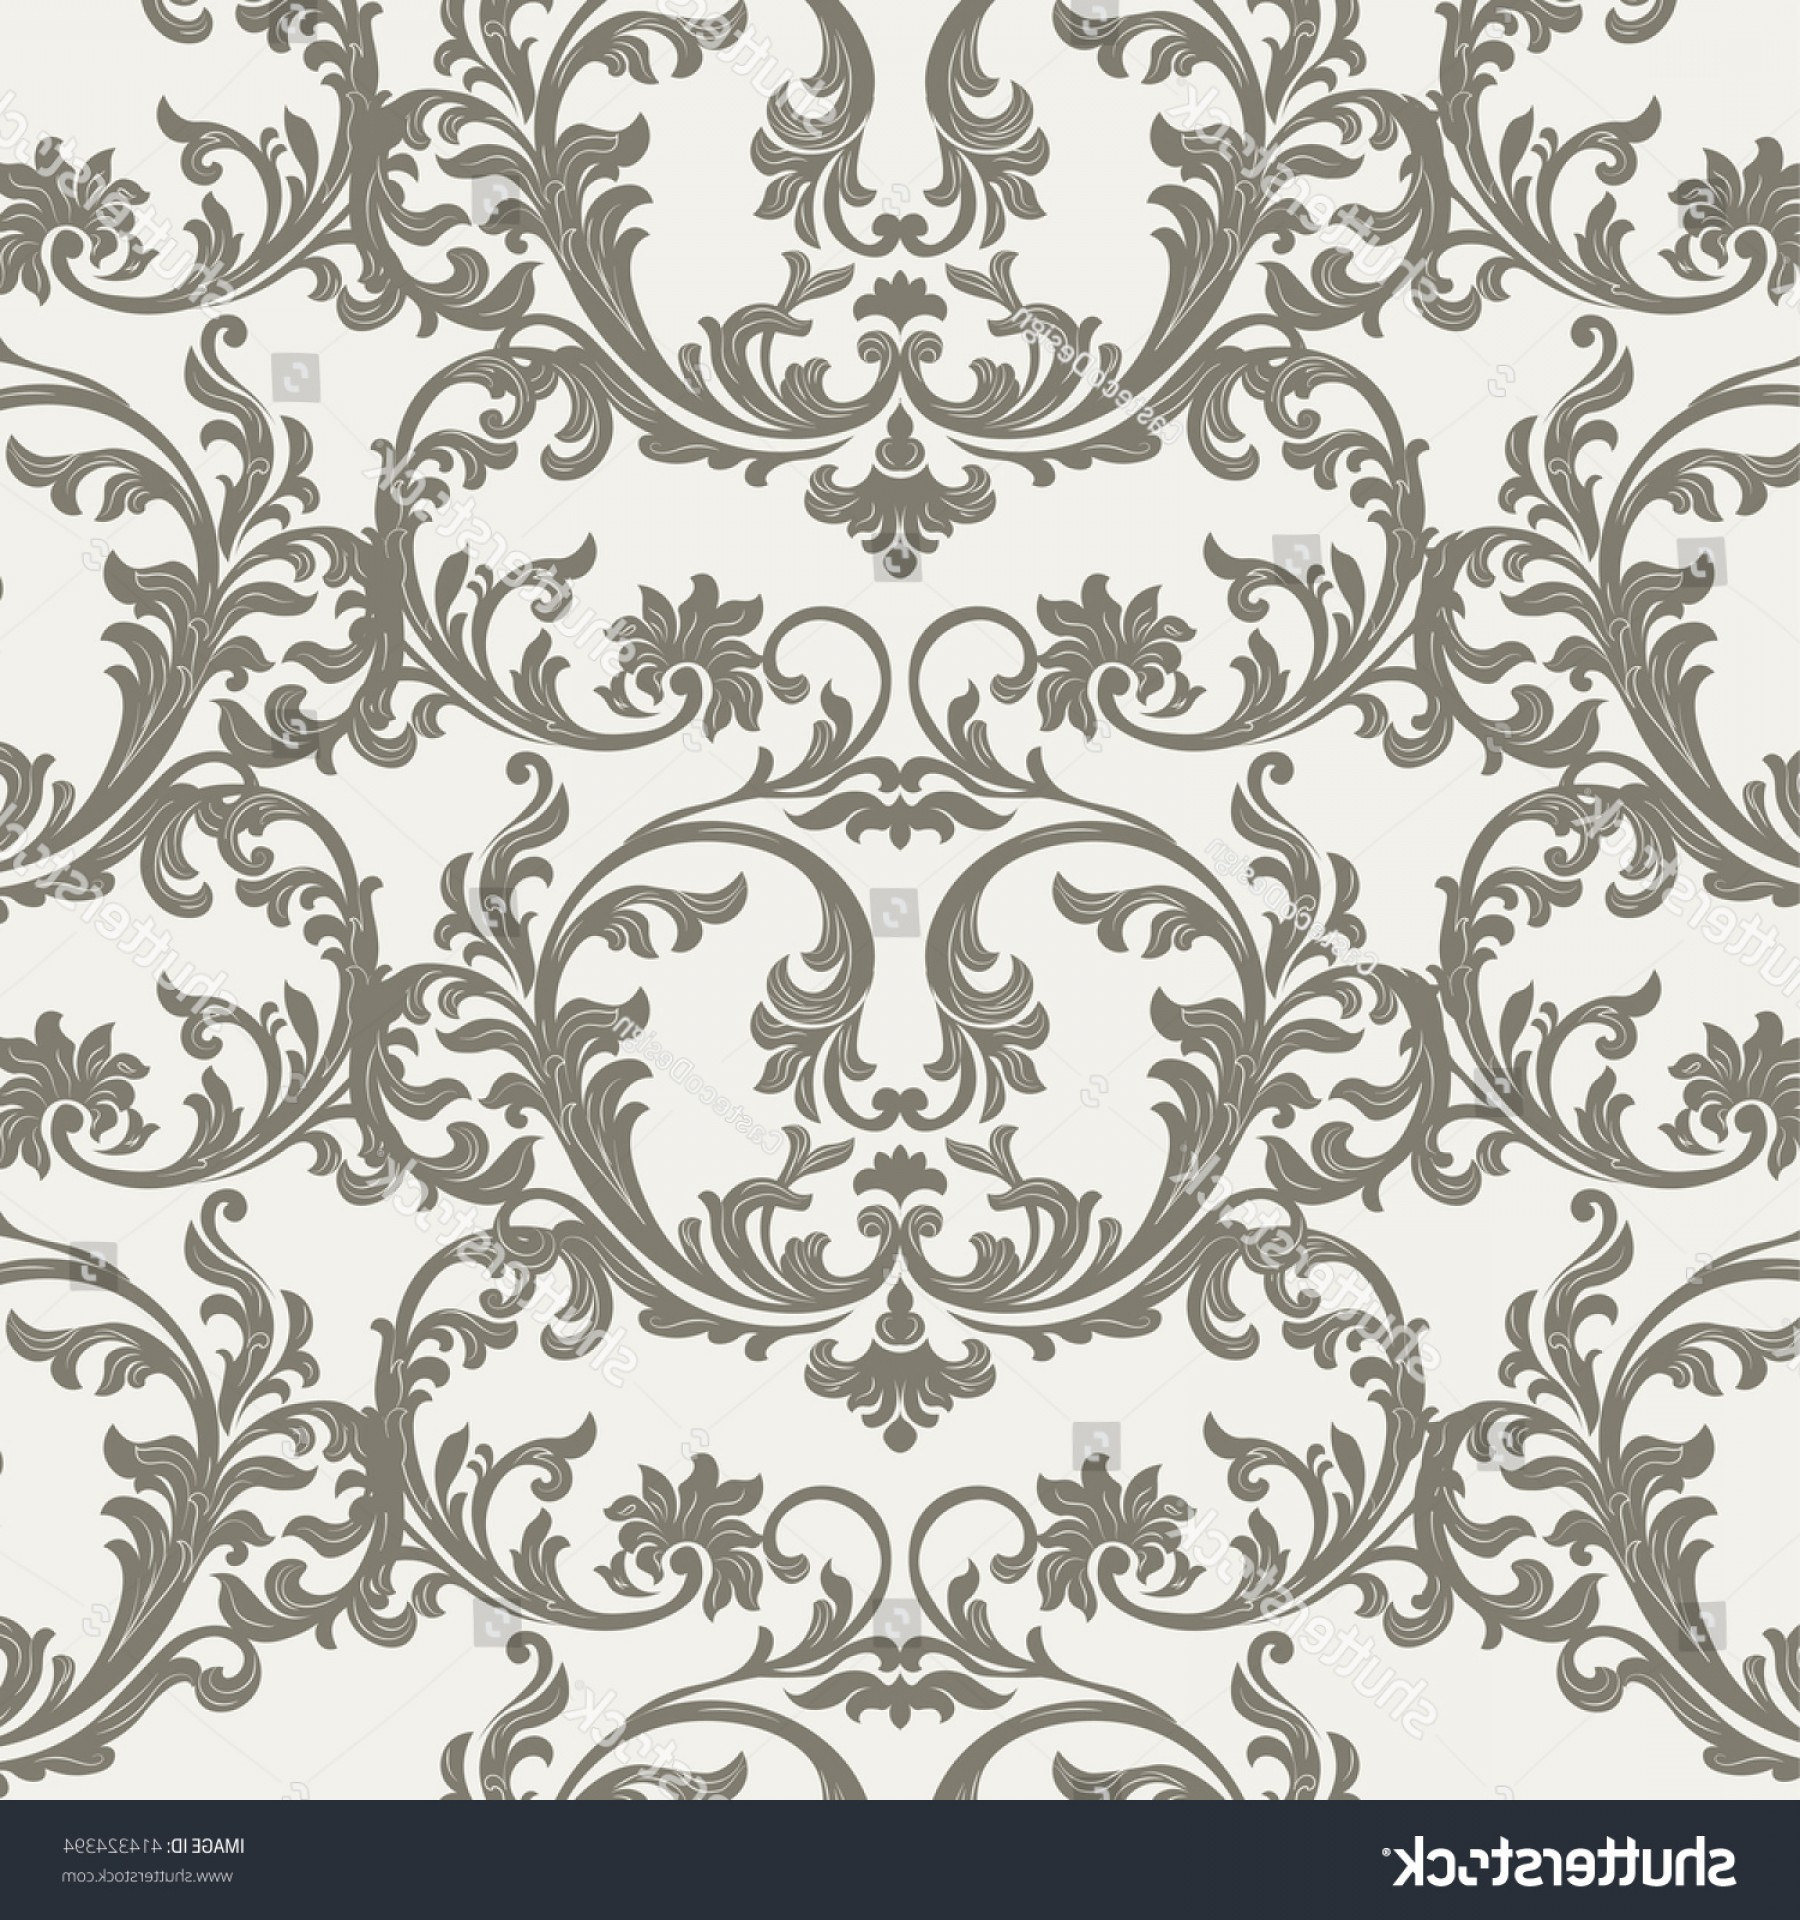 Damask Background Vector Art: Vector Baroque Vintage Floral Damask Pattern